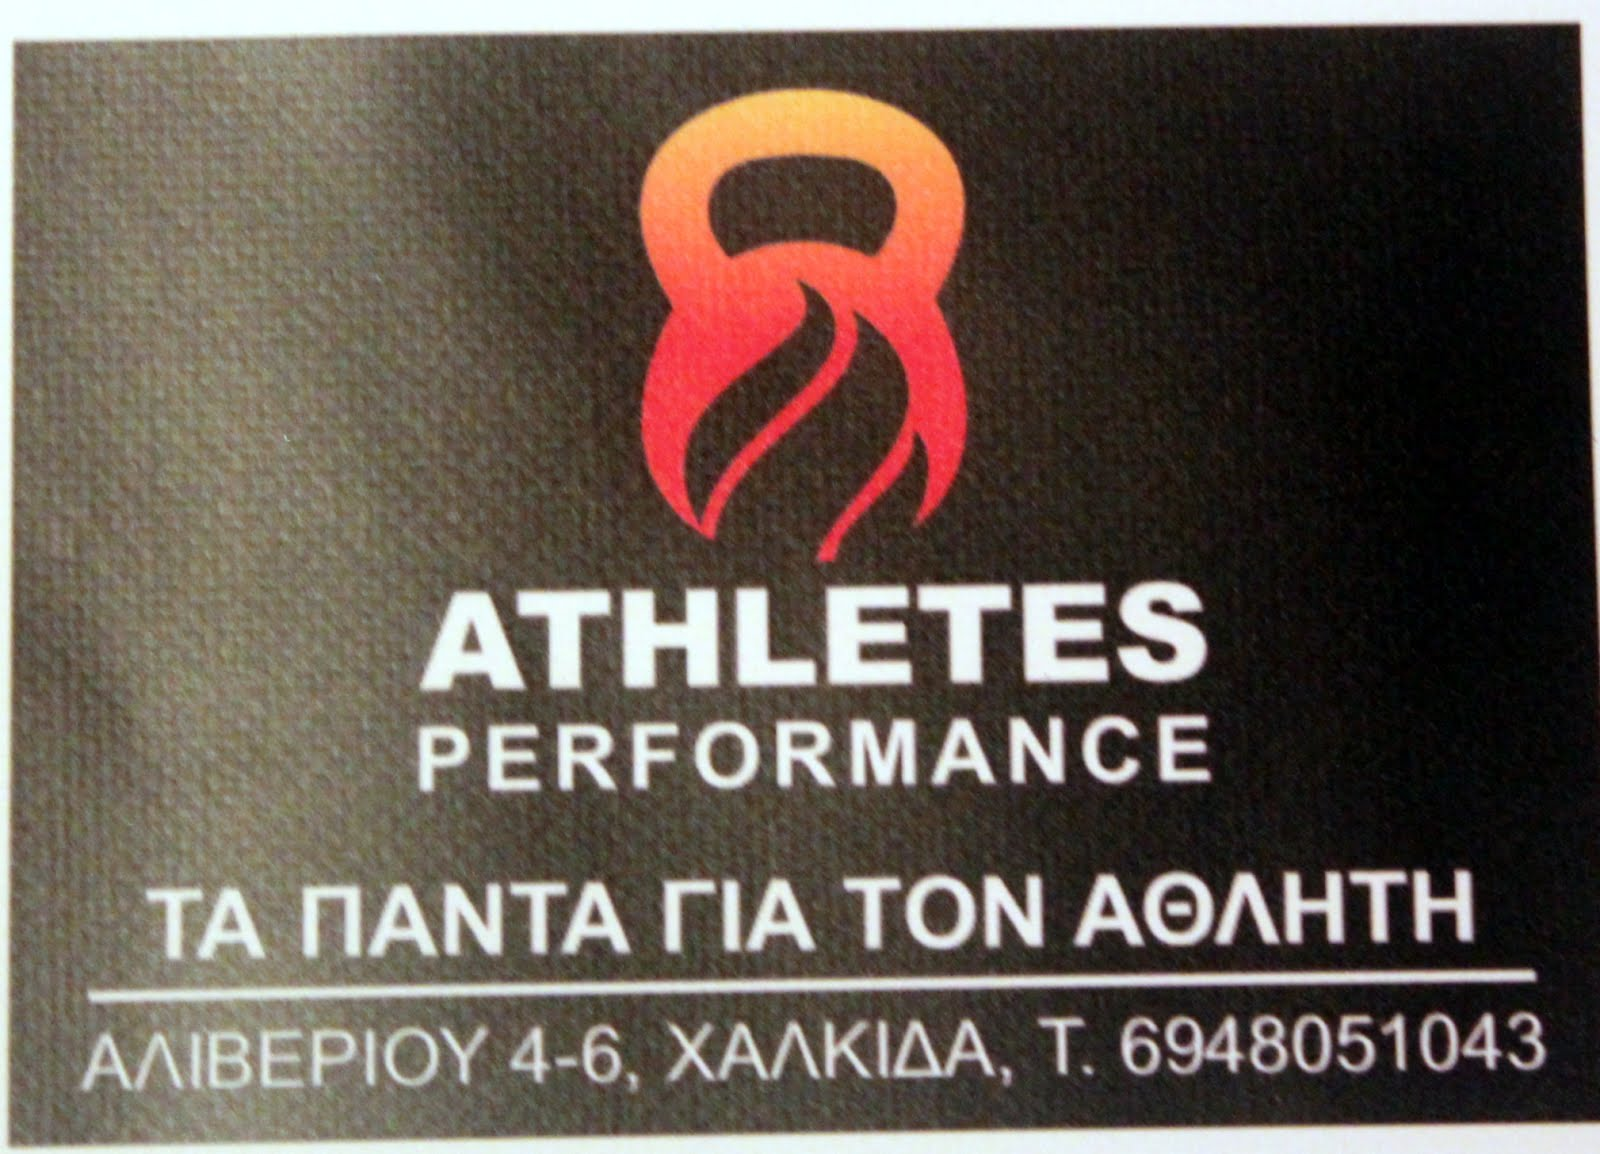 ATHLETES PERFORMANCE